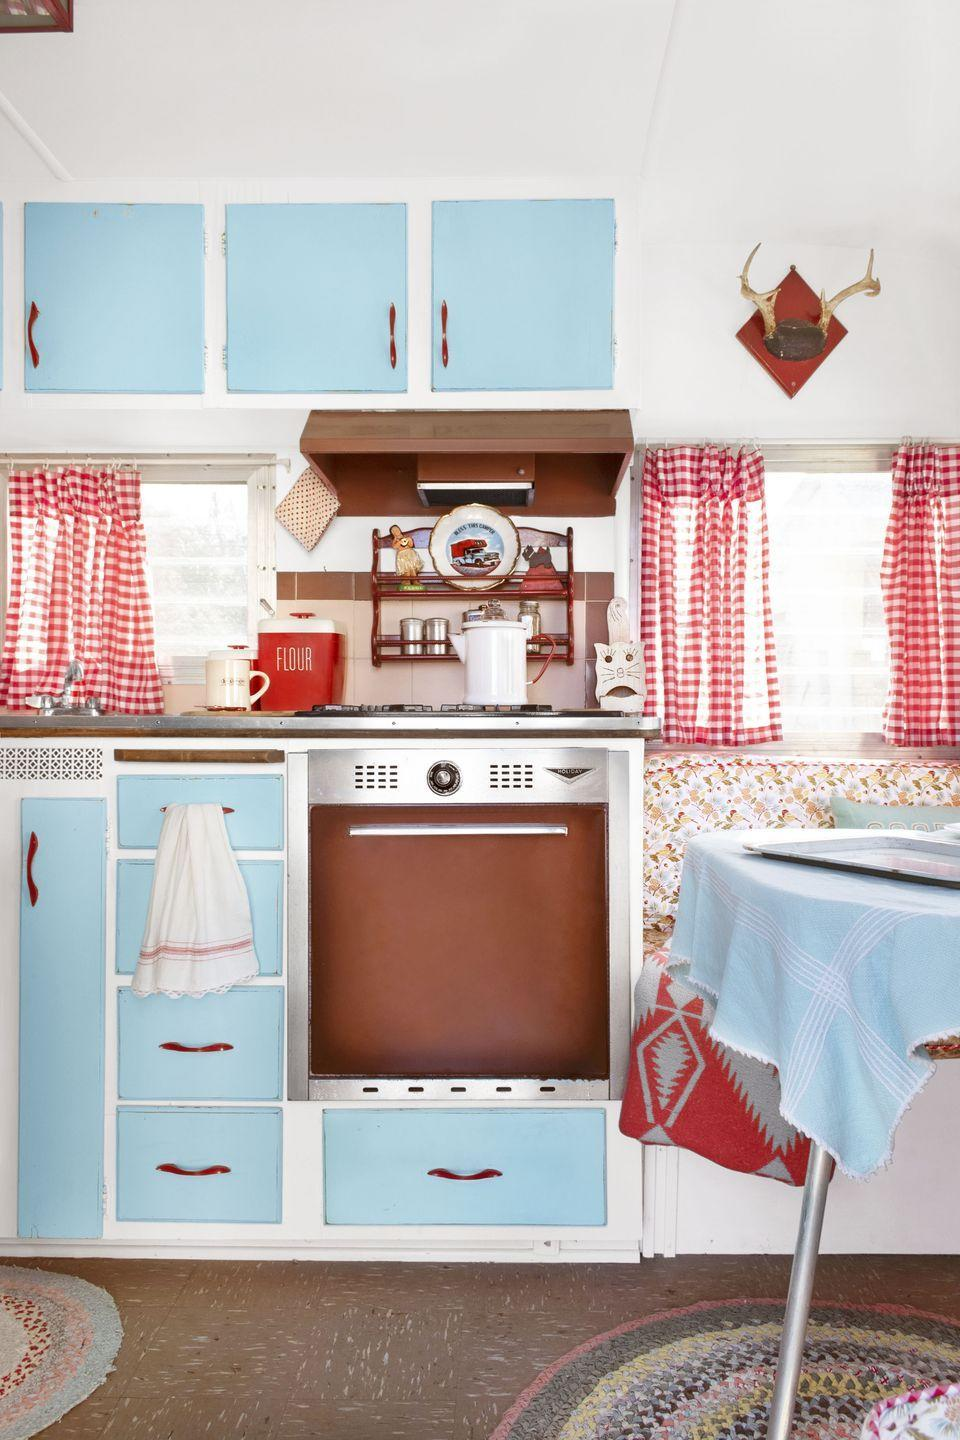 """<p>A small camper kitchen goes from blah to easy-breezy thanks to a little spray paint on the cabinets. Design House at Luckett's Store co-owner Amy Whyte spiffed up the kitchen with gingham, red pulls, and a can or two of <a href=""""https://go.redirectingat.com?id=74968X1596630&url=https%3A%2F%2Fwww.homedepot.com%2Fp%2FRust-Oleum-Stops-Rust-12-oz-Protective-Enamel-Gloss-Light-Turquoise-Spray-Paint-284678%2F205585924&sref=https%3A%2F%2Fwww.popularmechanics.com%2Fhome%2Fg37190959%2Fpaint-colors-small-rooms%2F"""" rel=""""nofollow noopener"""" target=""""_blank"""" data-ylk=""""slk:Rust-Oleum Turquoise"""" class=""""link rapid-noclick-resp"""">Rust-Oleum Turquoise</a>. <br></p>"""